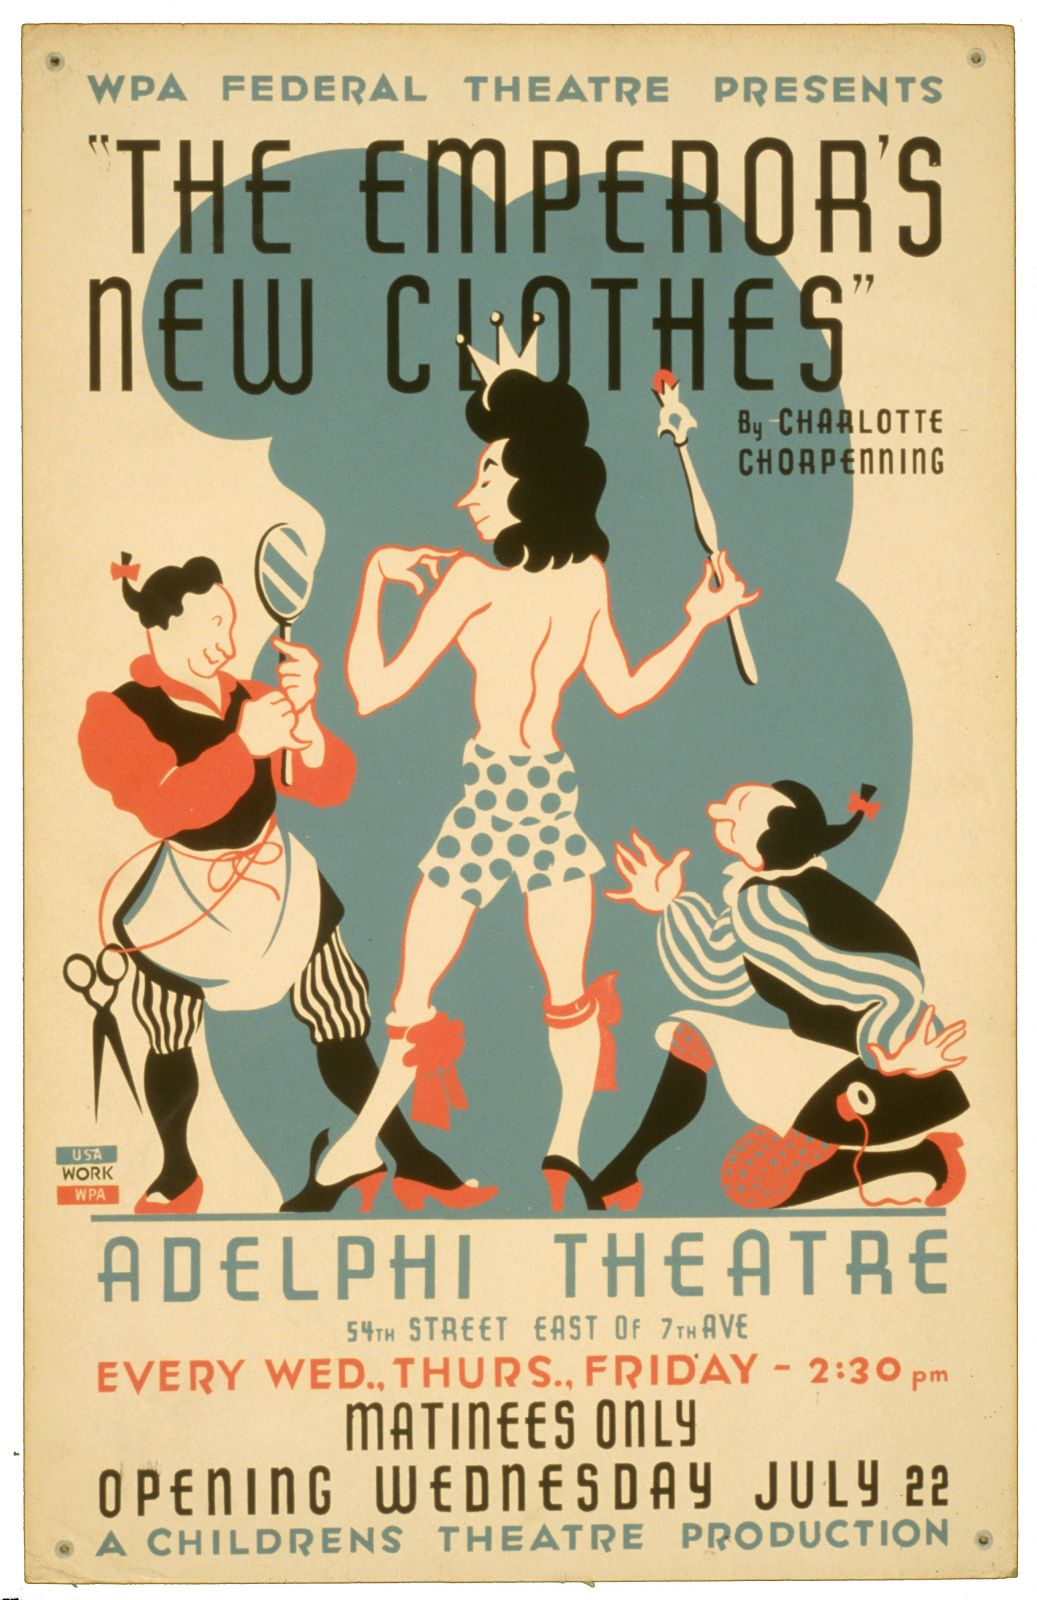 "WPA Federal Theatre presents ""The emperor's new clothes"" by Charlotte Chorpenning"